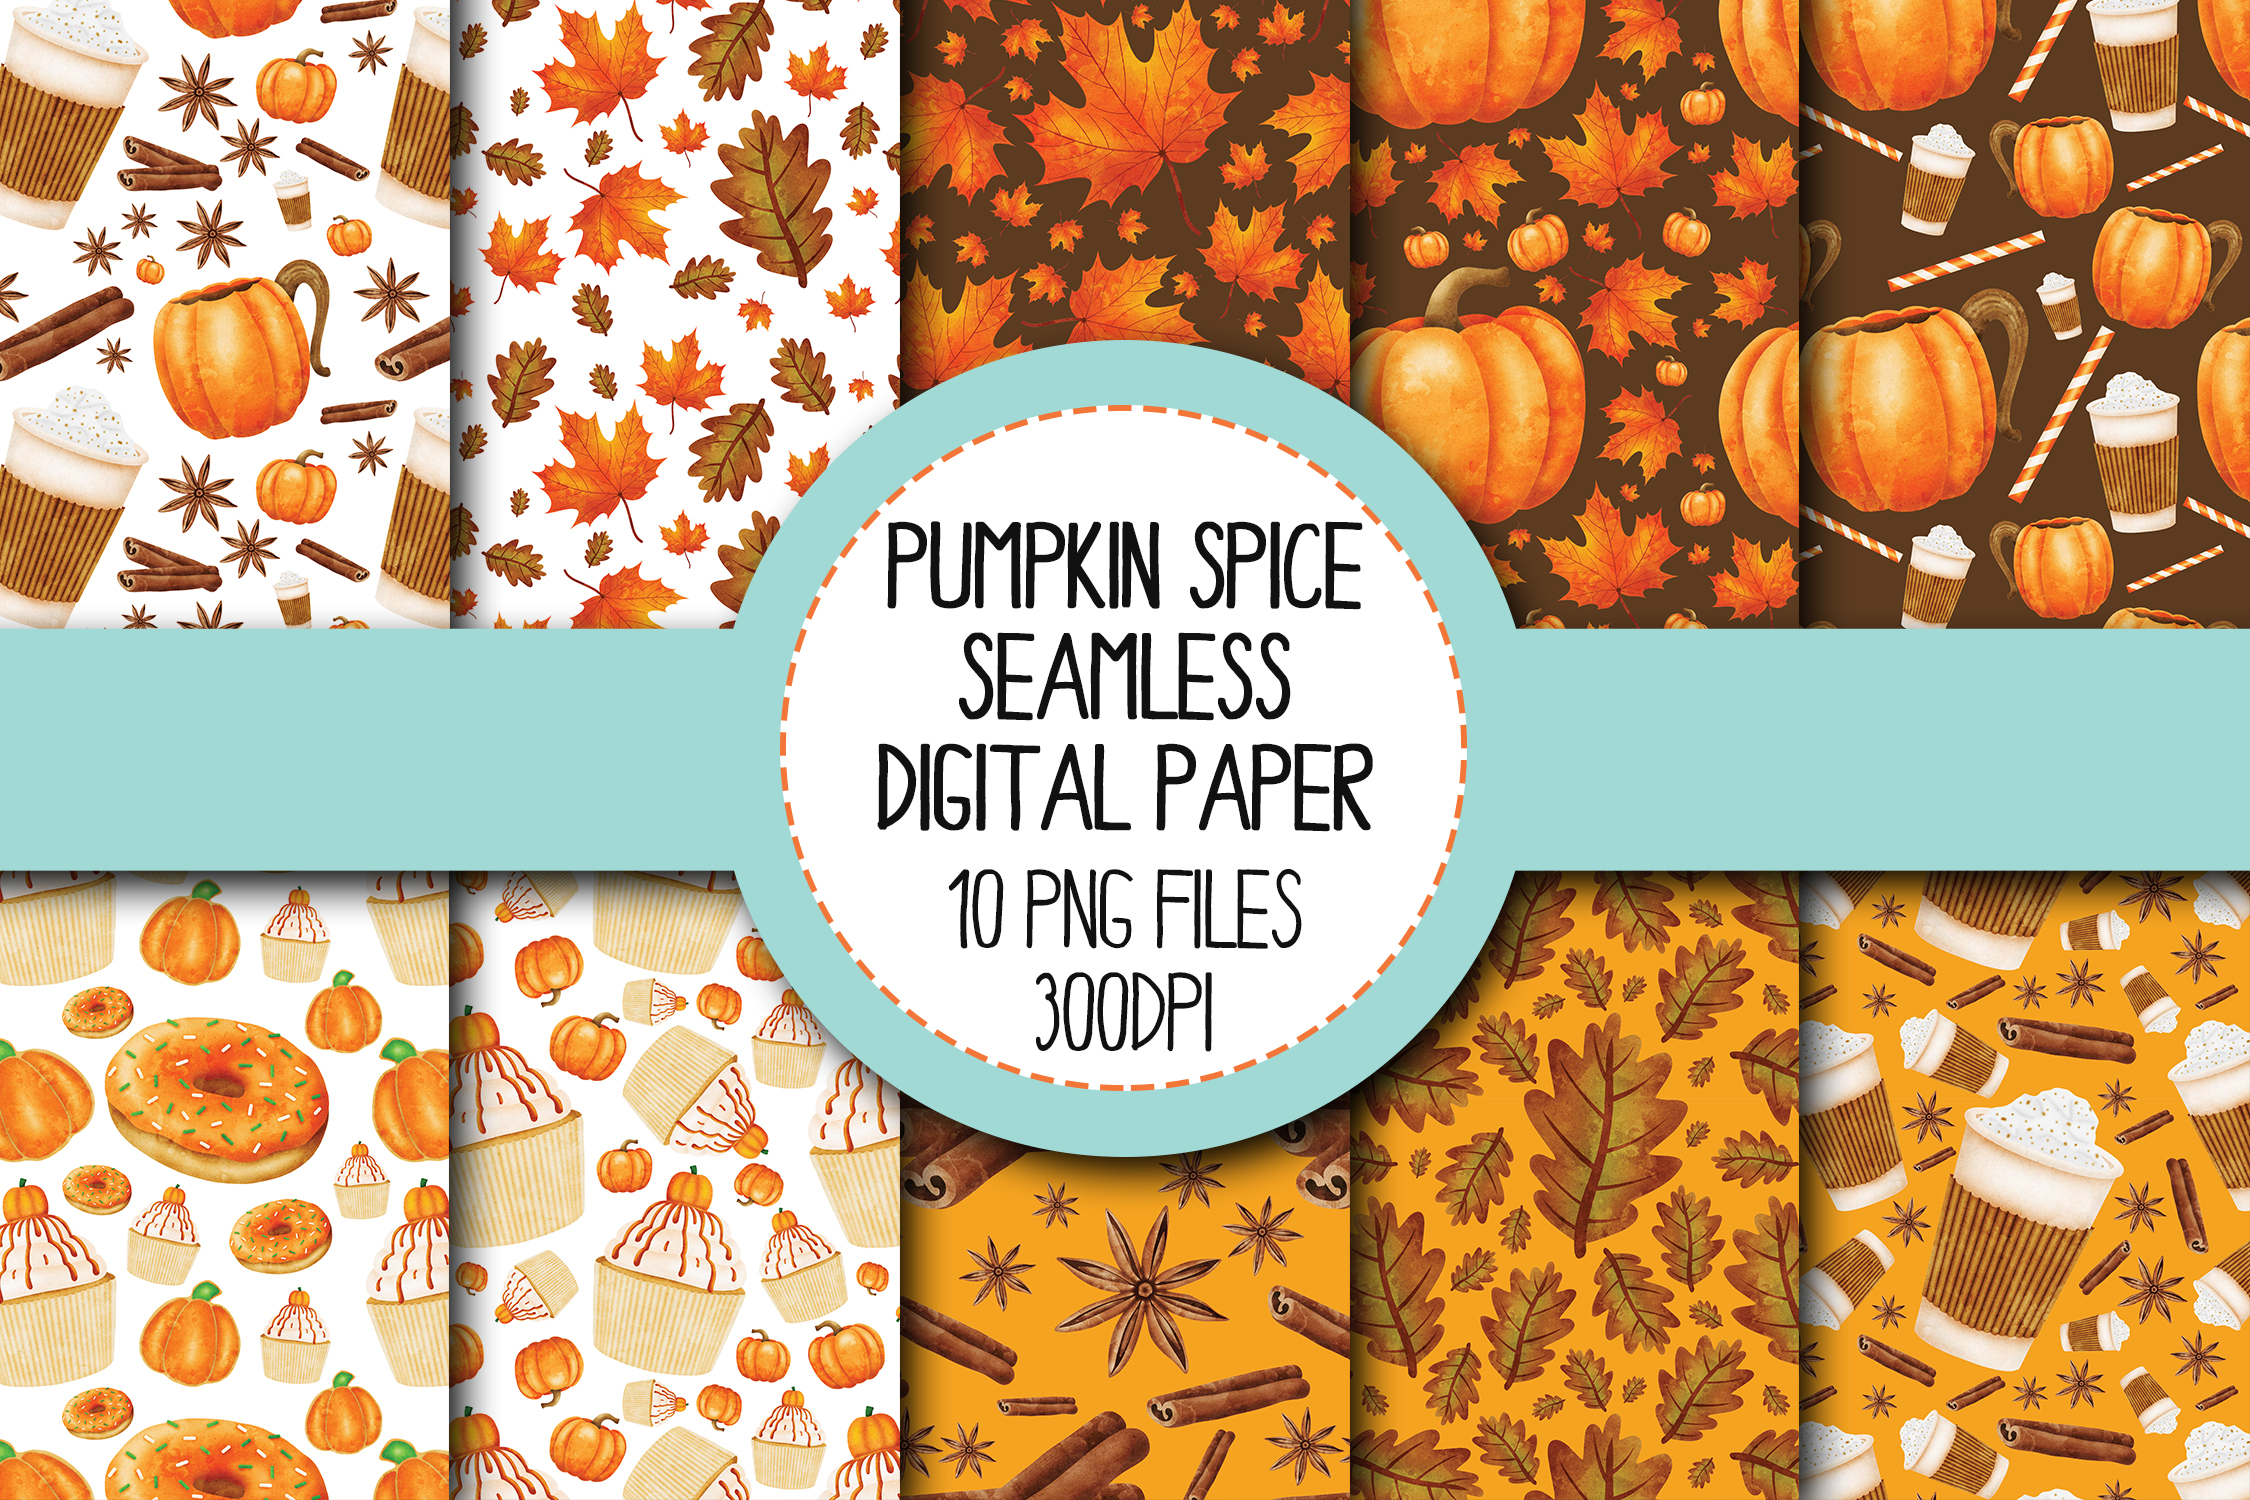 Watercolor Pumpkin Spice Seamless Digital Papers Set 1 example image 1